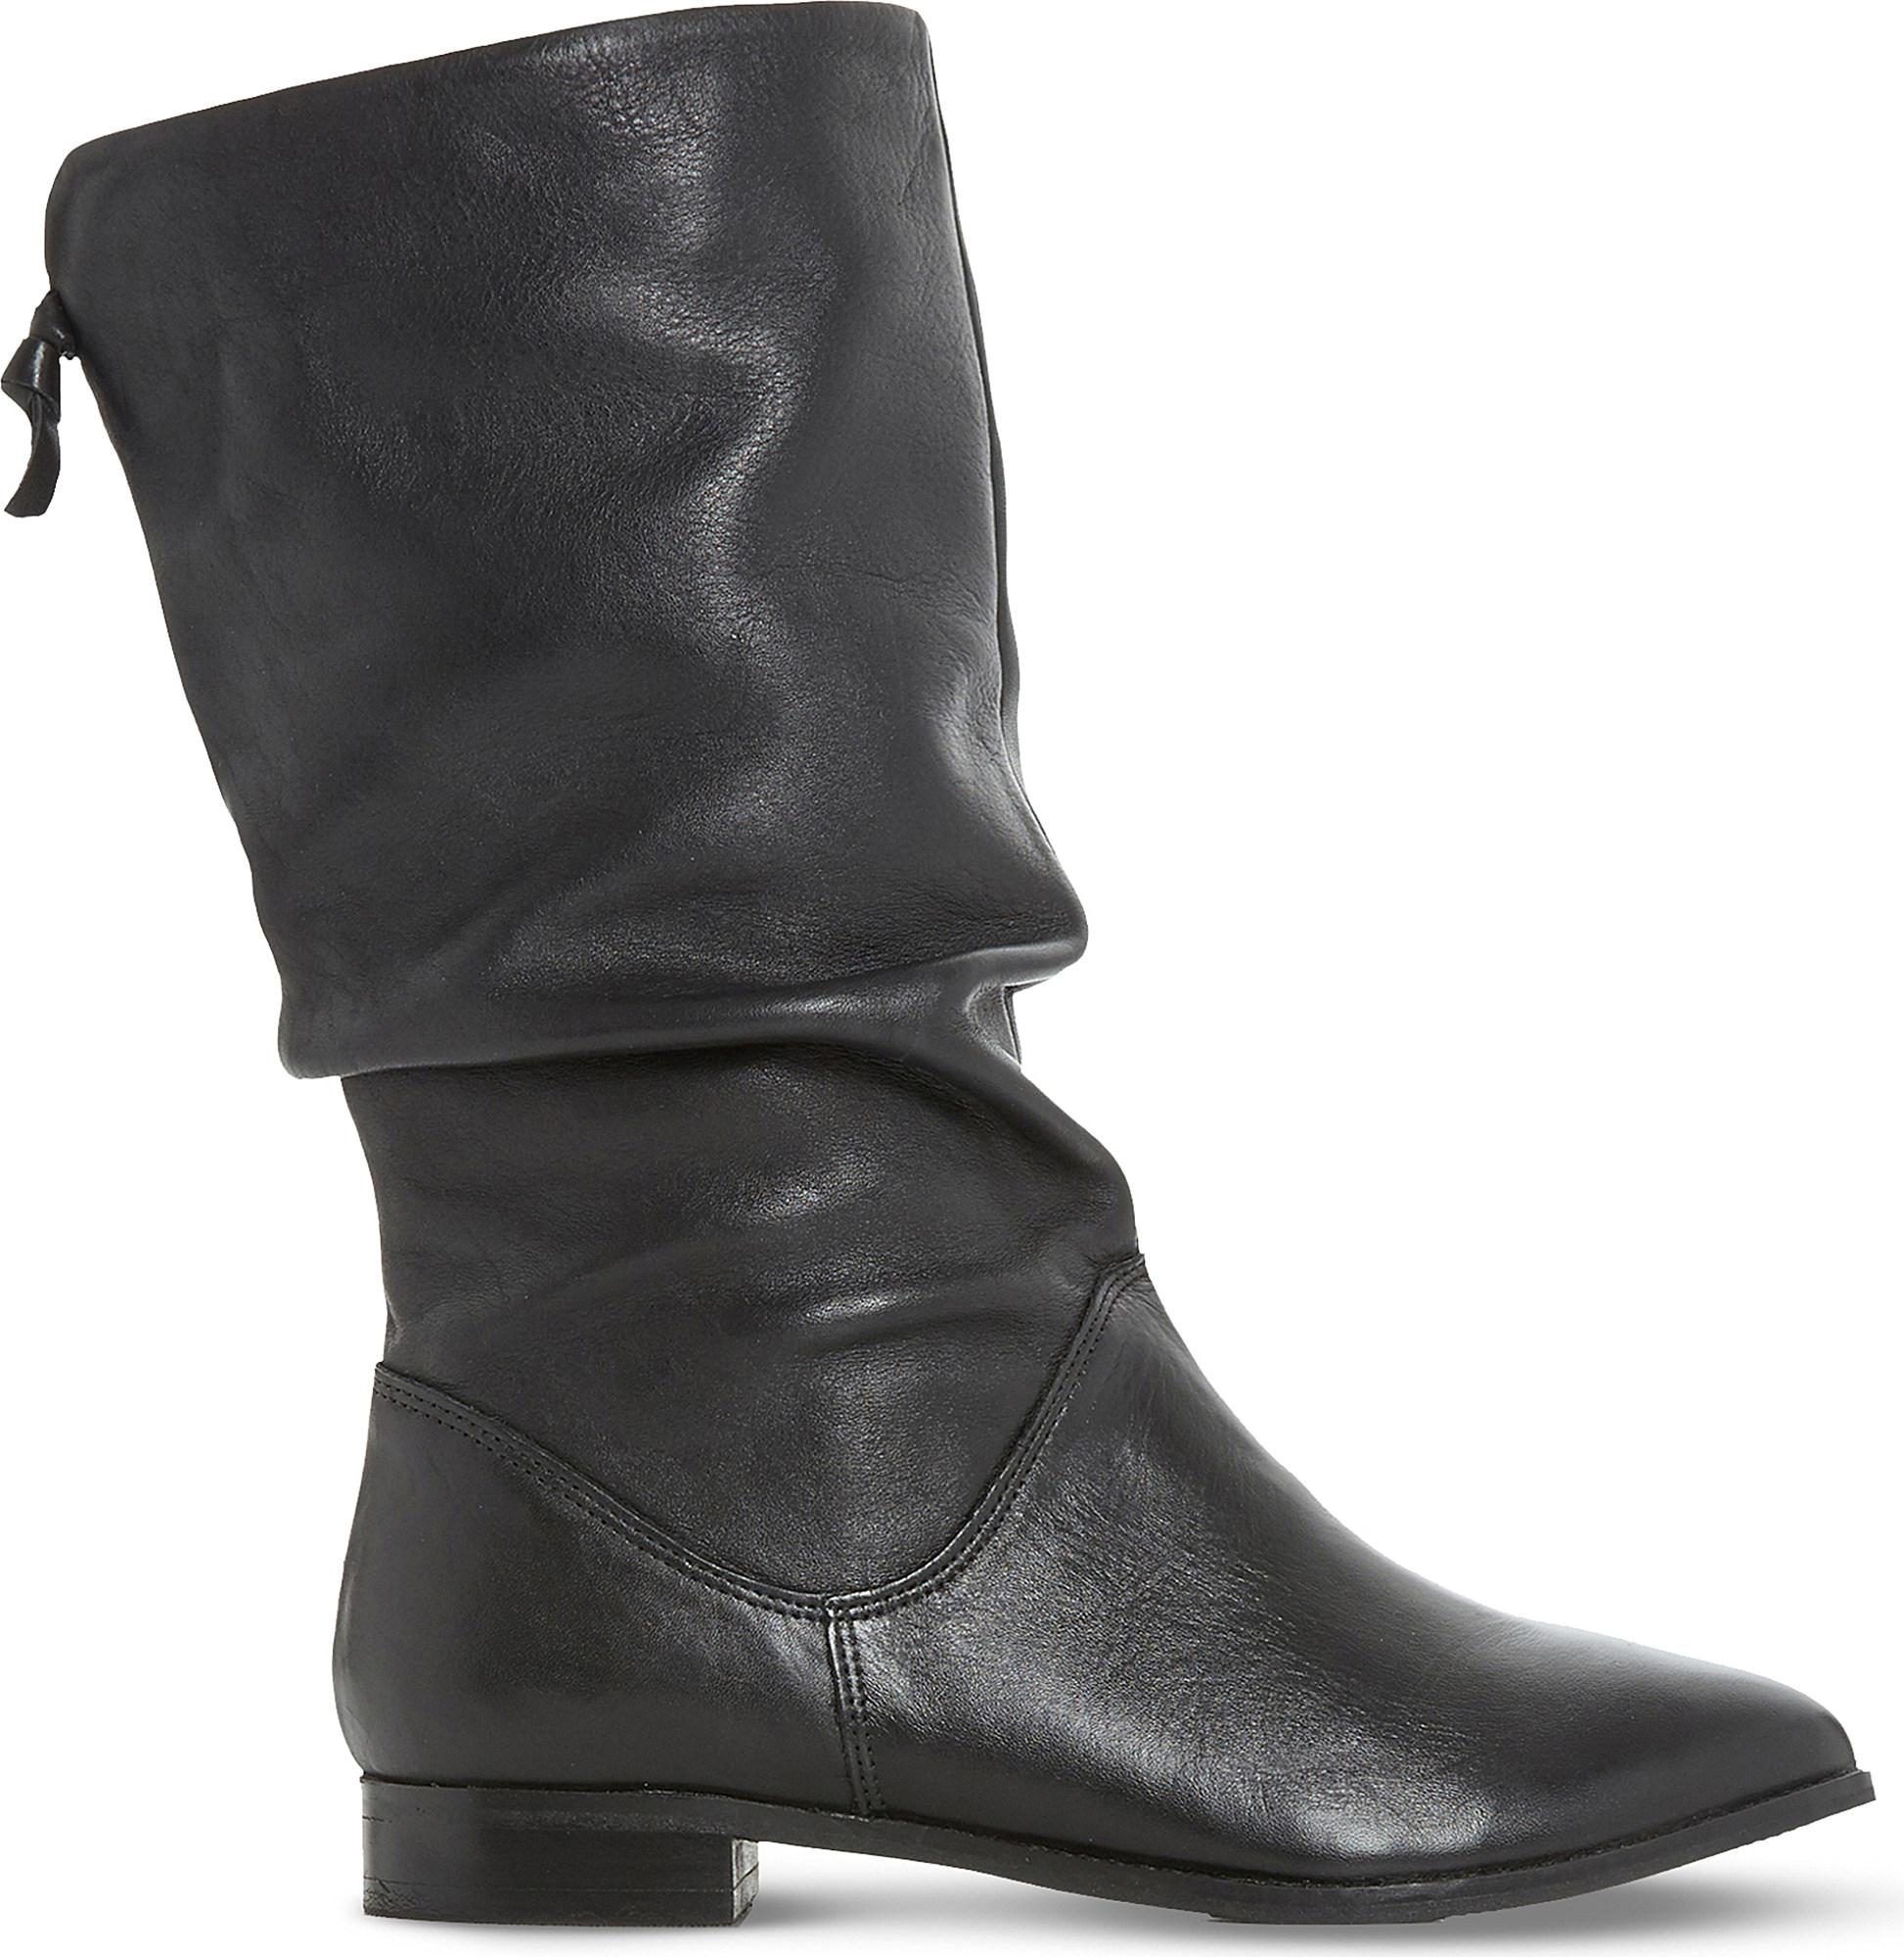 Discount Dune Black-Leather Rosalind Slouchy Leather Boots for Women Sale